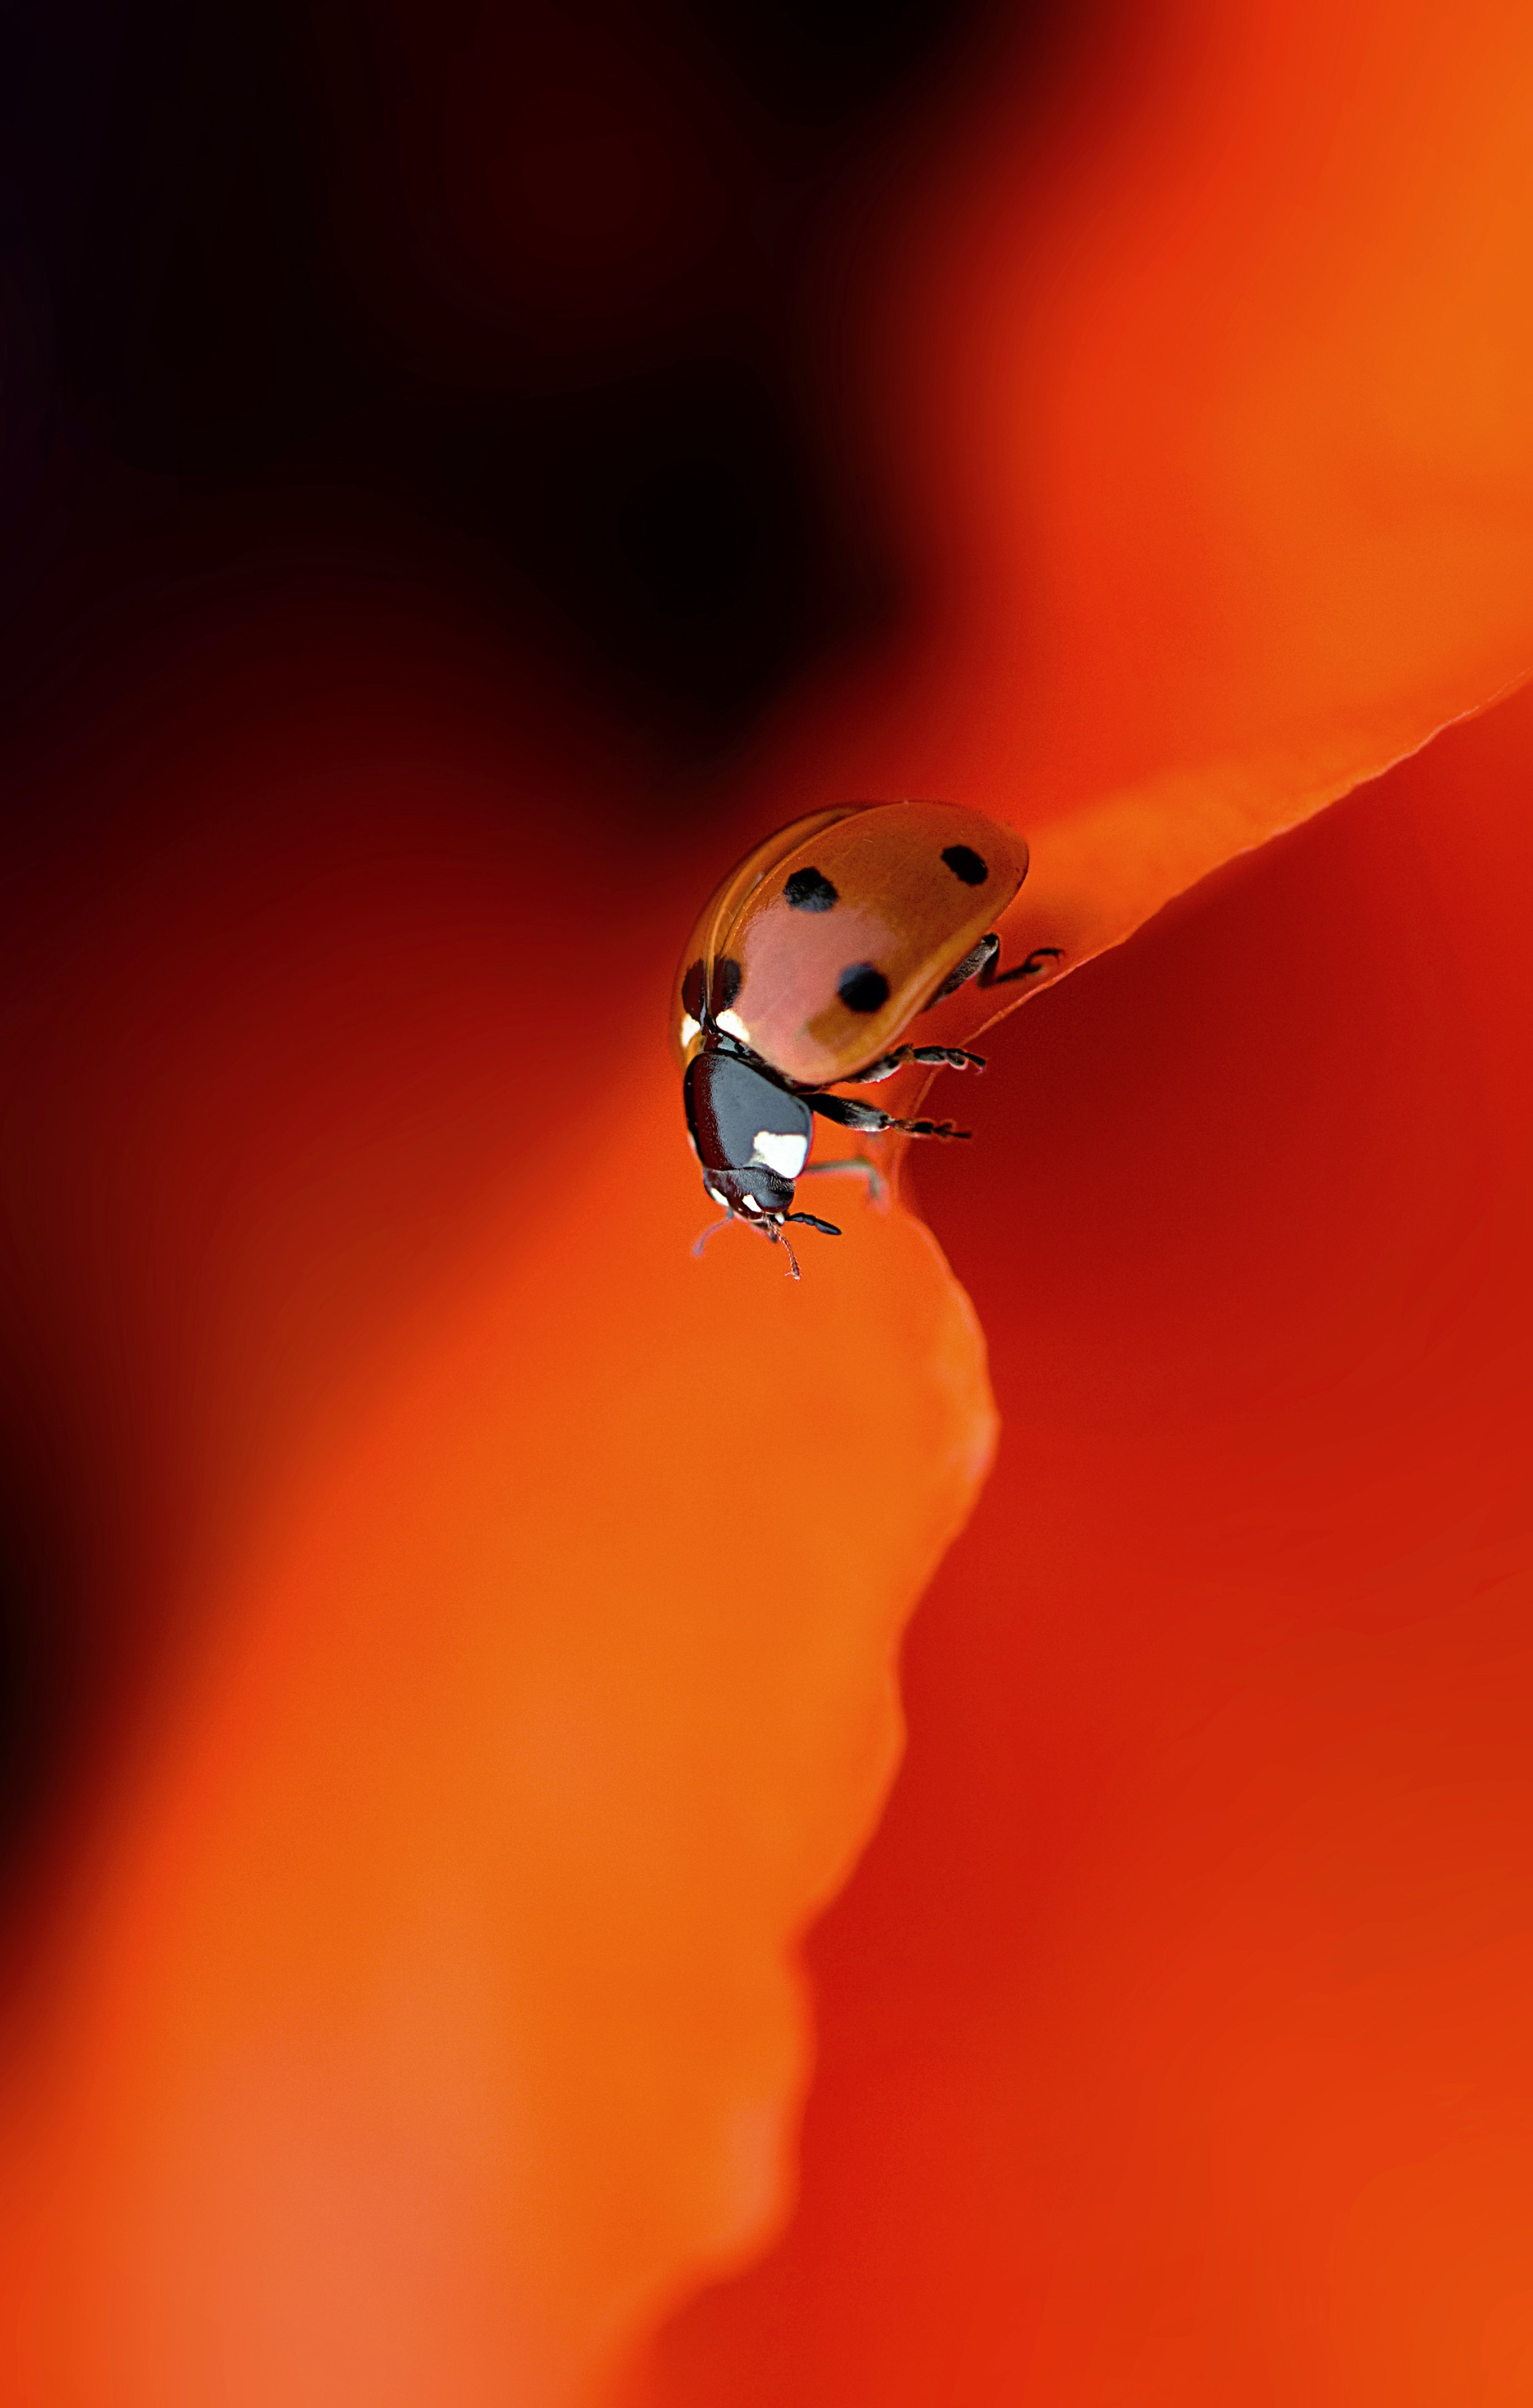 A striking red and orange closeup photo of a ladybug descending the edge of an orange poppy leaf